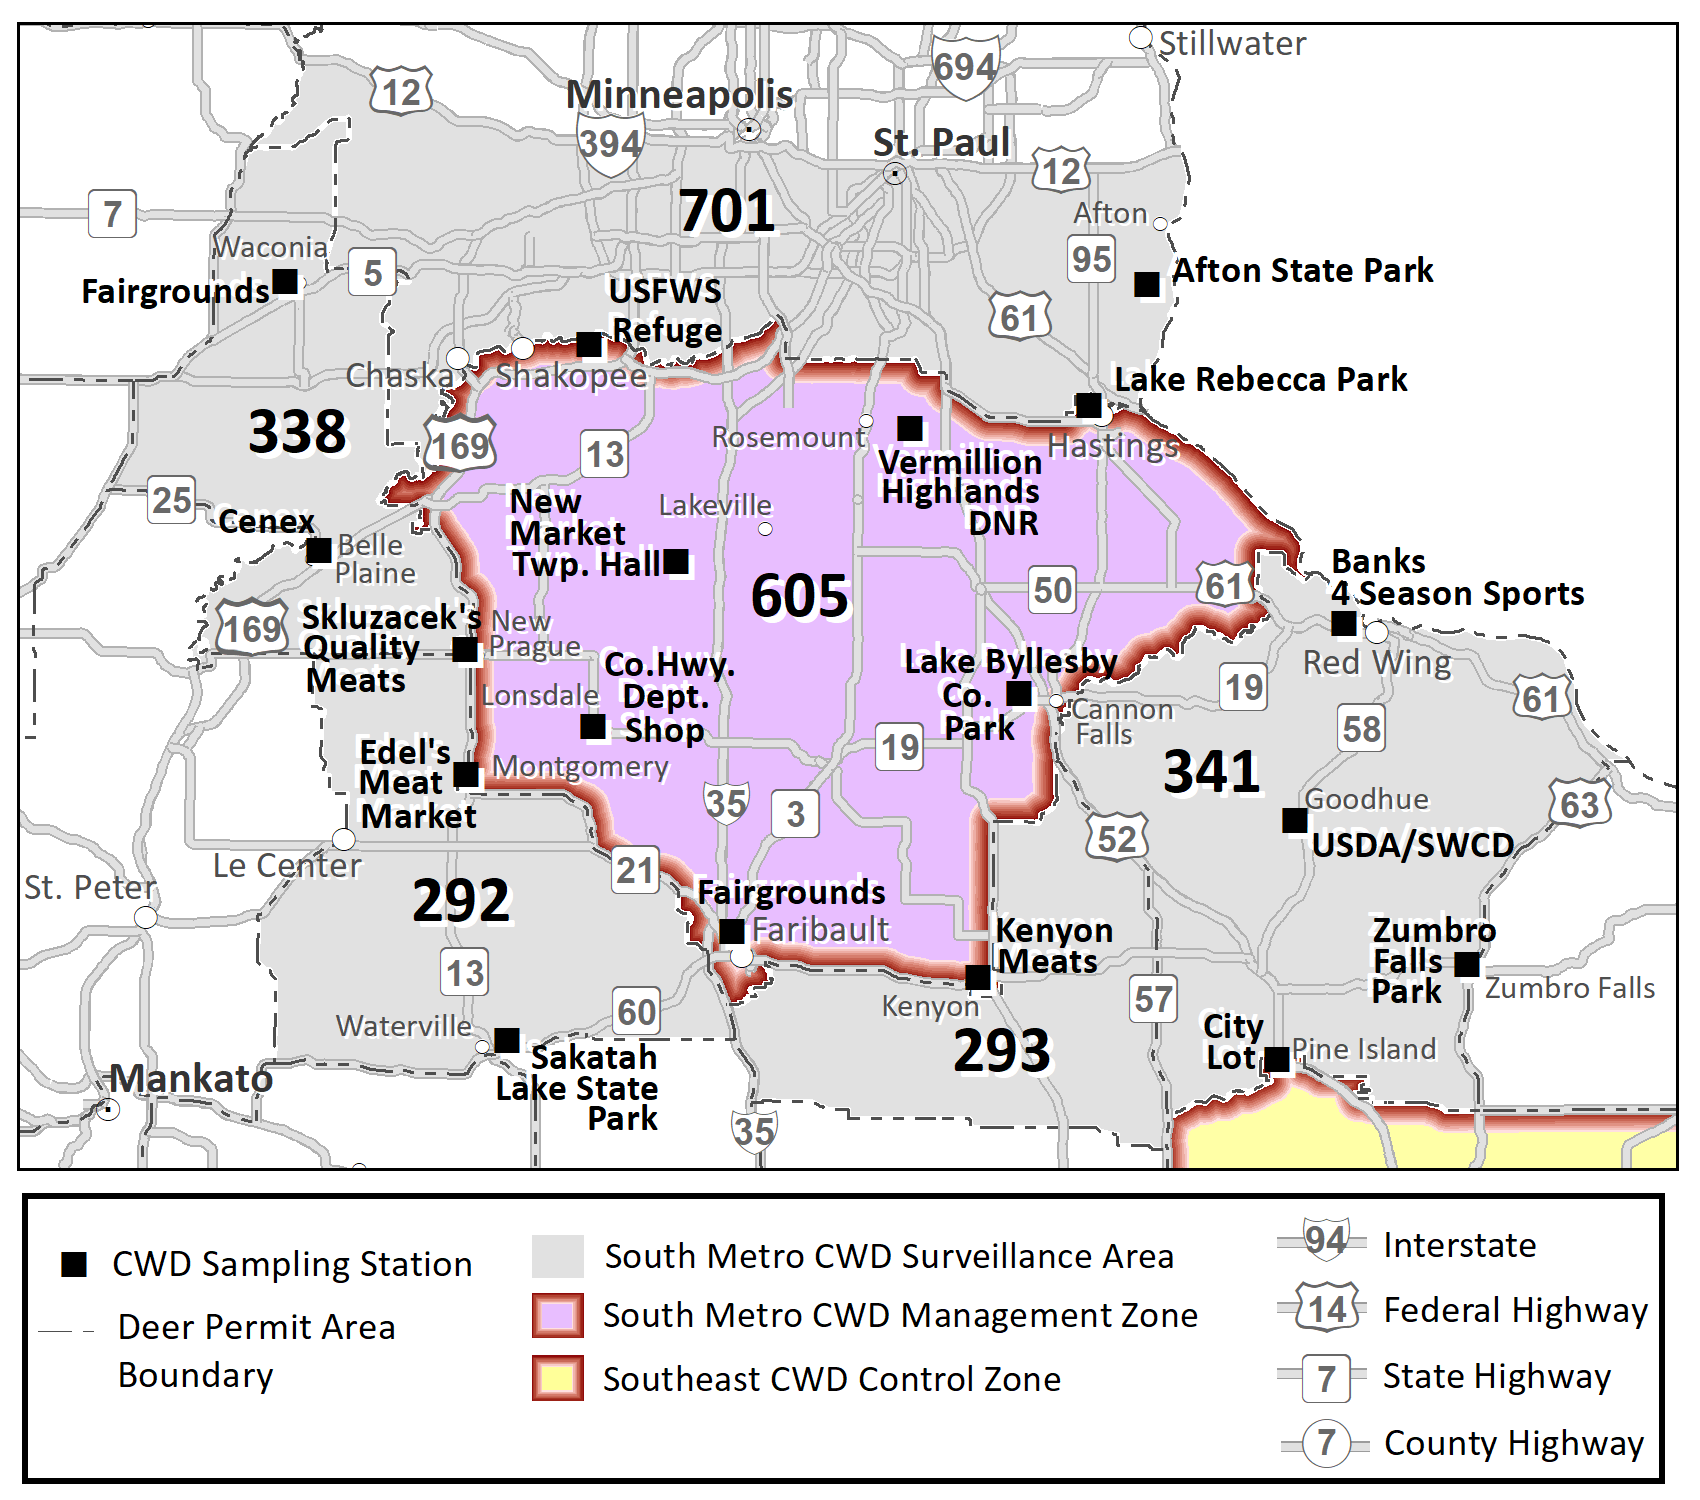 Map highlighting the DPAs in the south metro CWD surveillance area (292, 293, 338, 341 and 701) and sampling stations in this area.